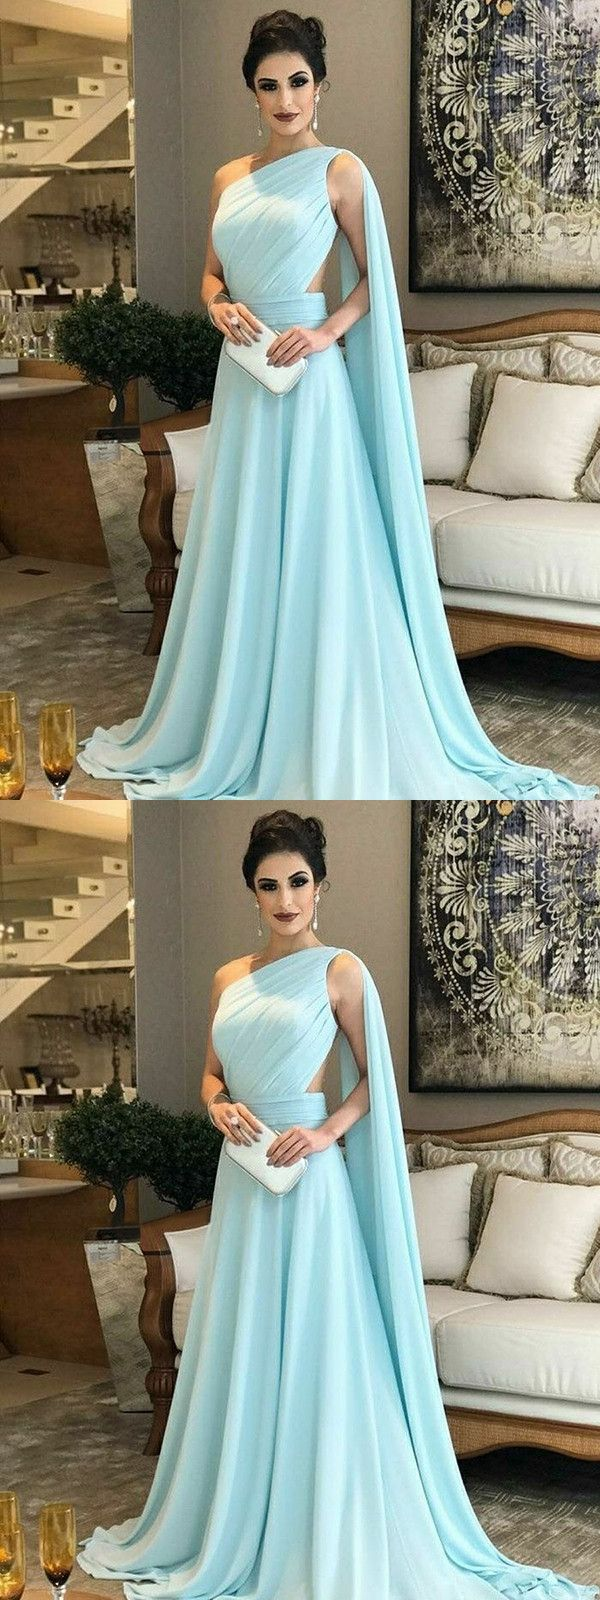 Chic a line chiffon prom dress modest beautiful cheap long prom